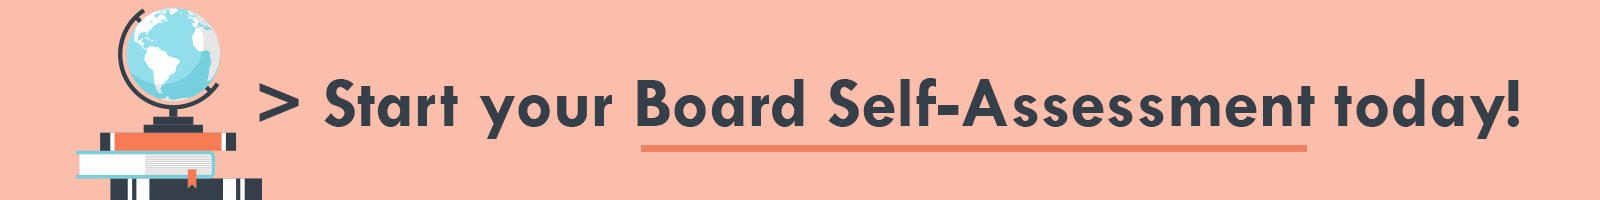 Take the board self-assessment